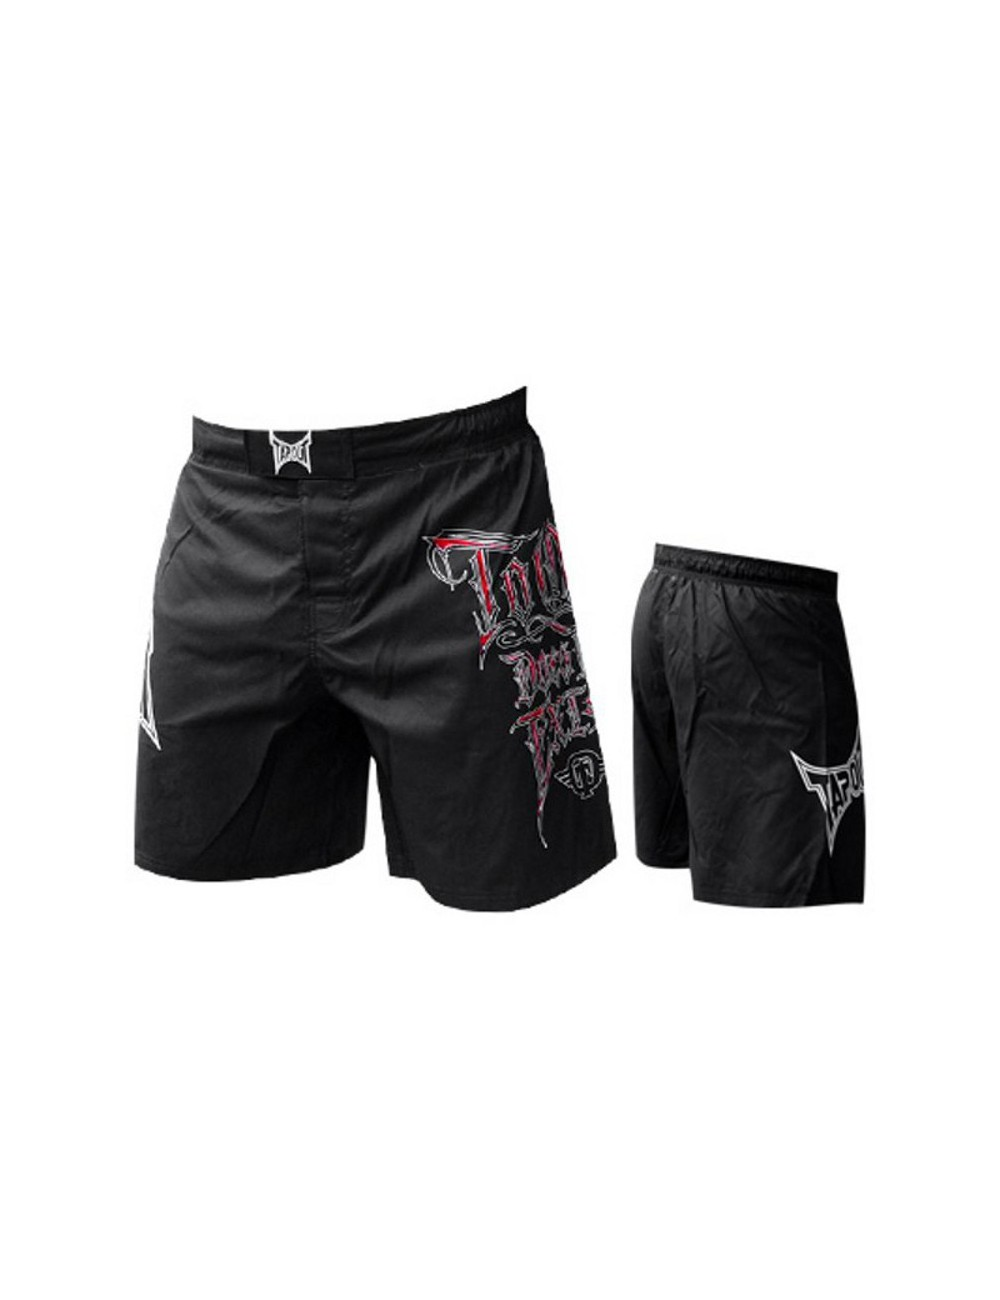 Spodenki MMA TAPOUT Never Quit